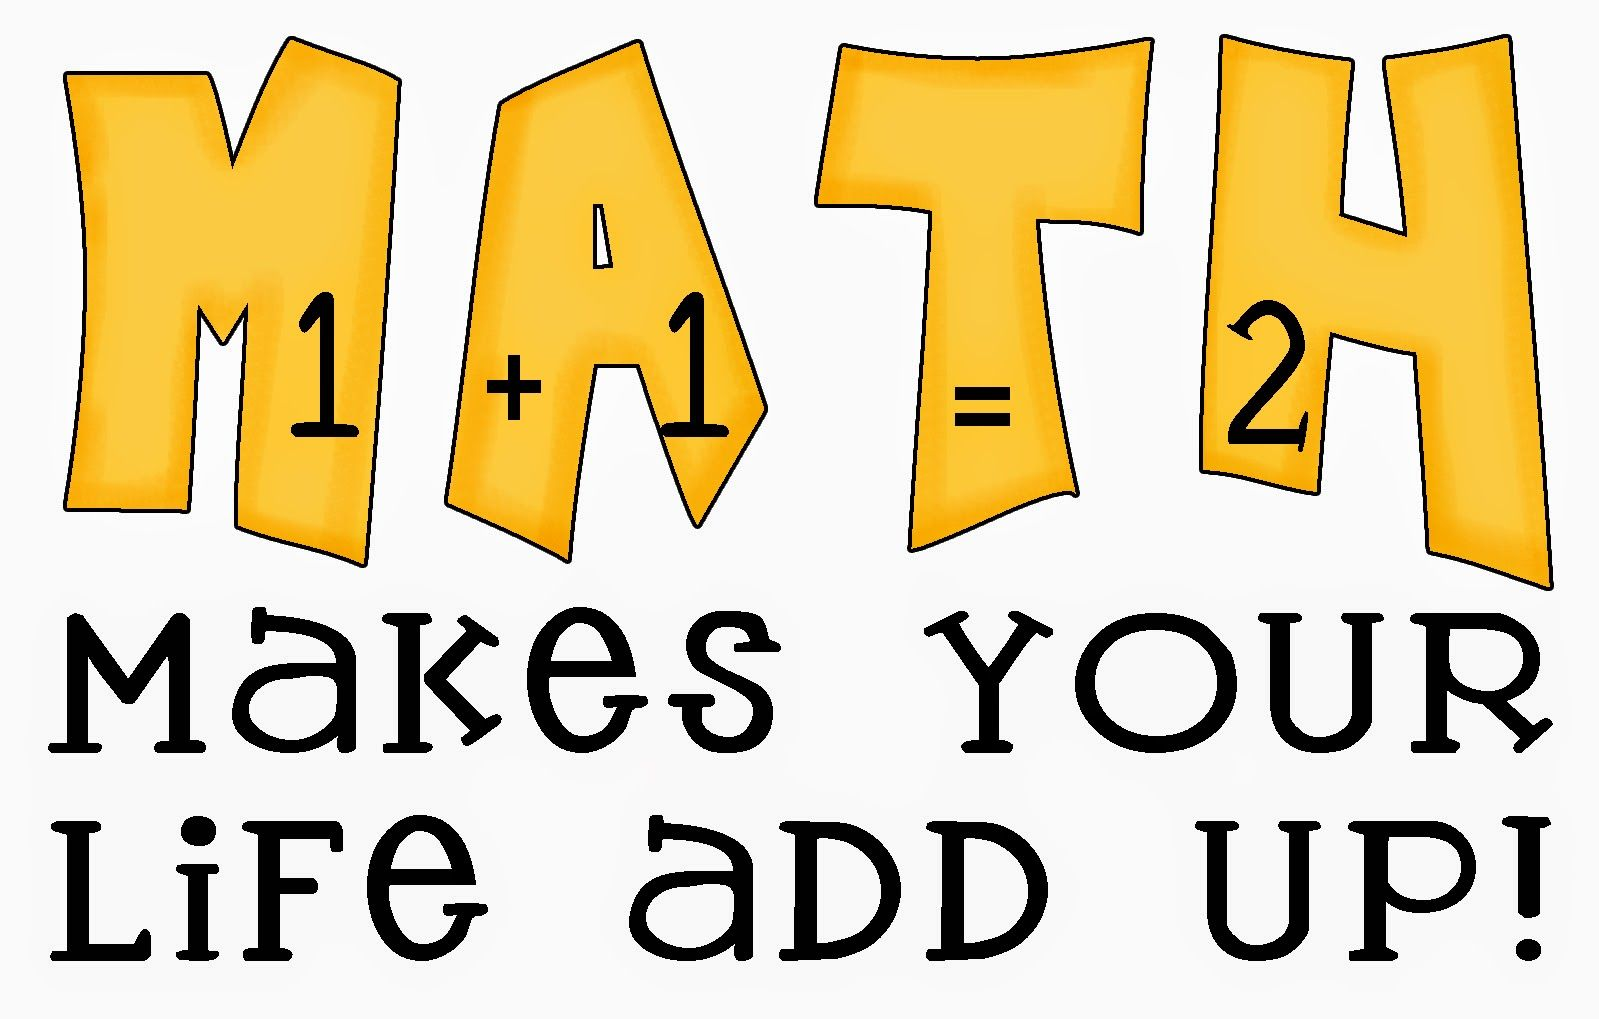 Quotes For Kids Classroom Google Search Math Quotes Teaching Math Facts Math Facts